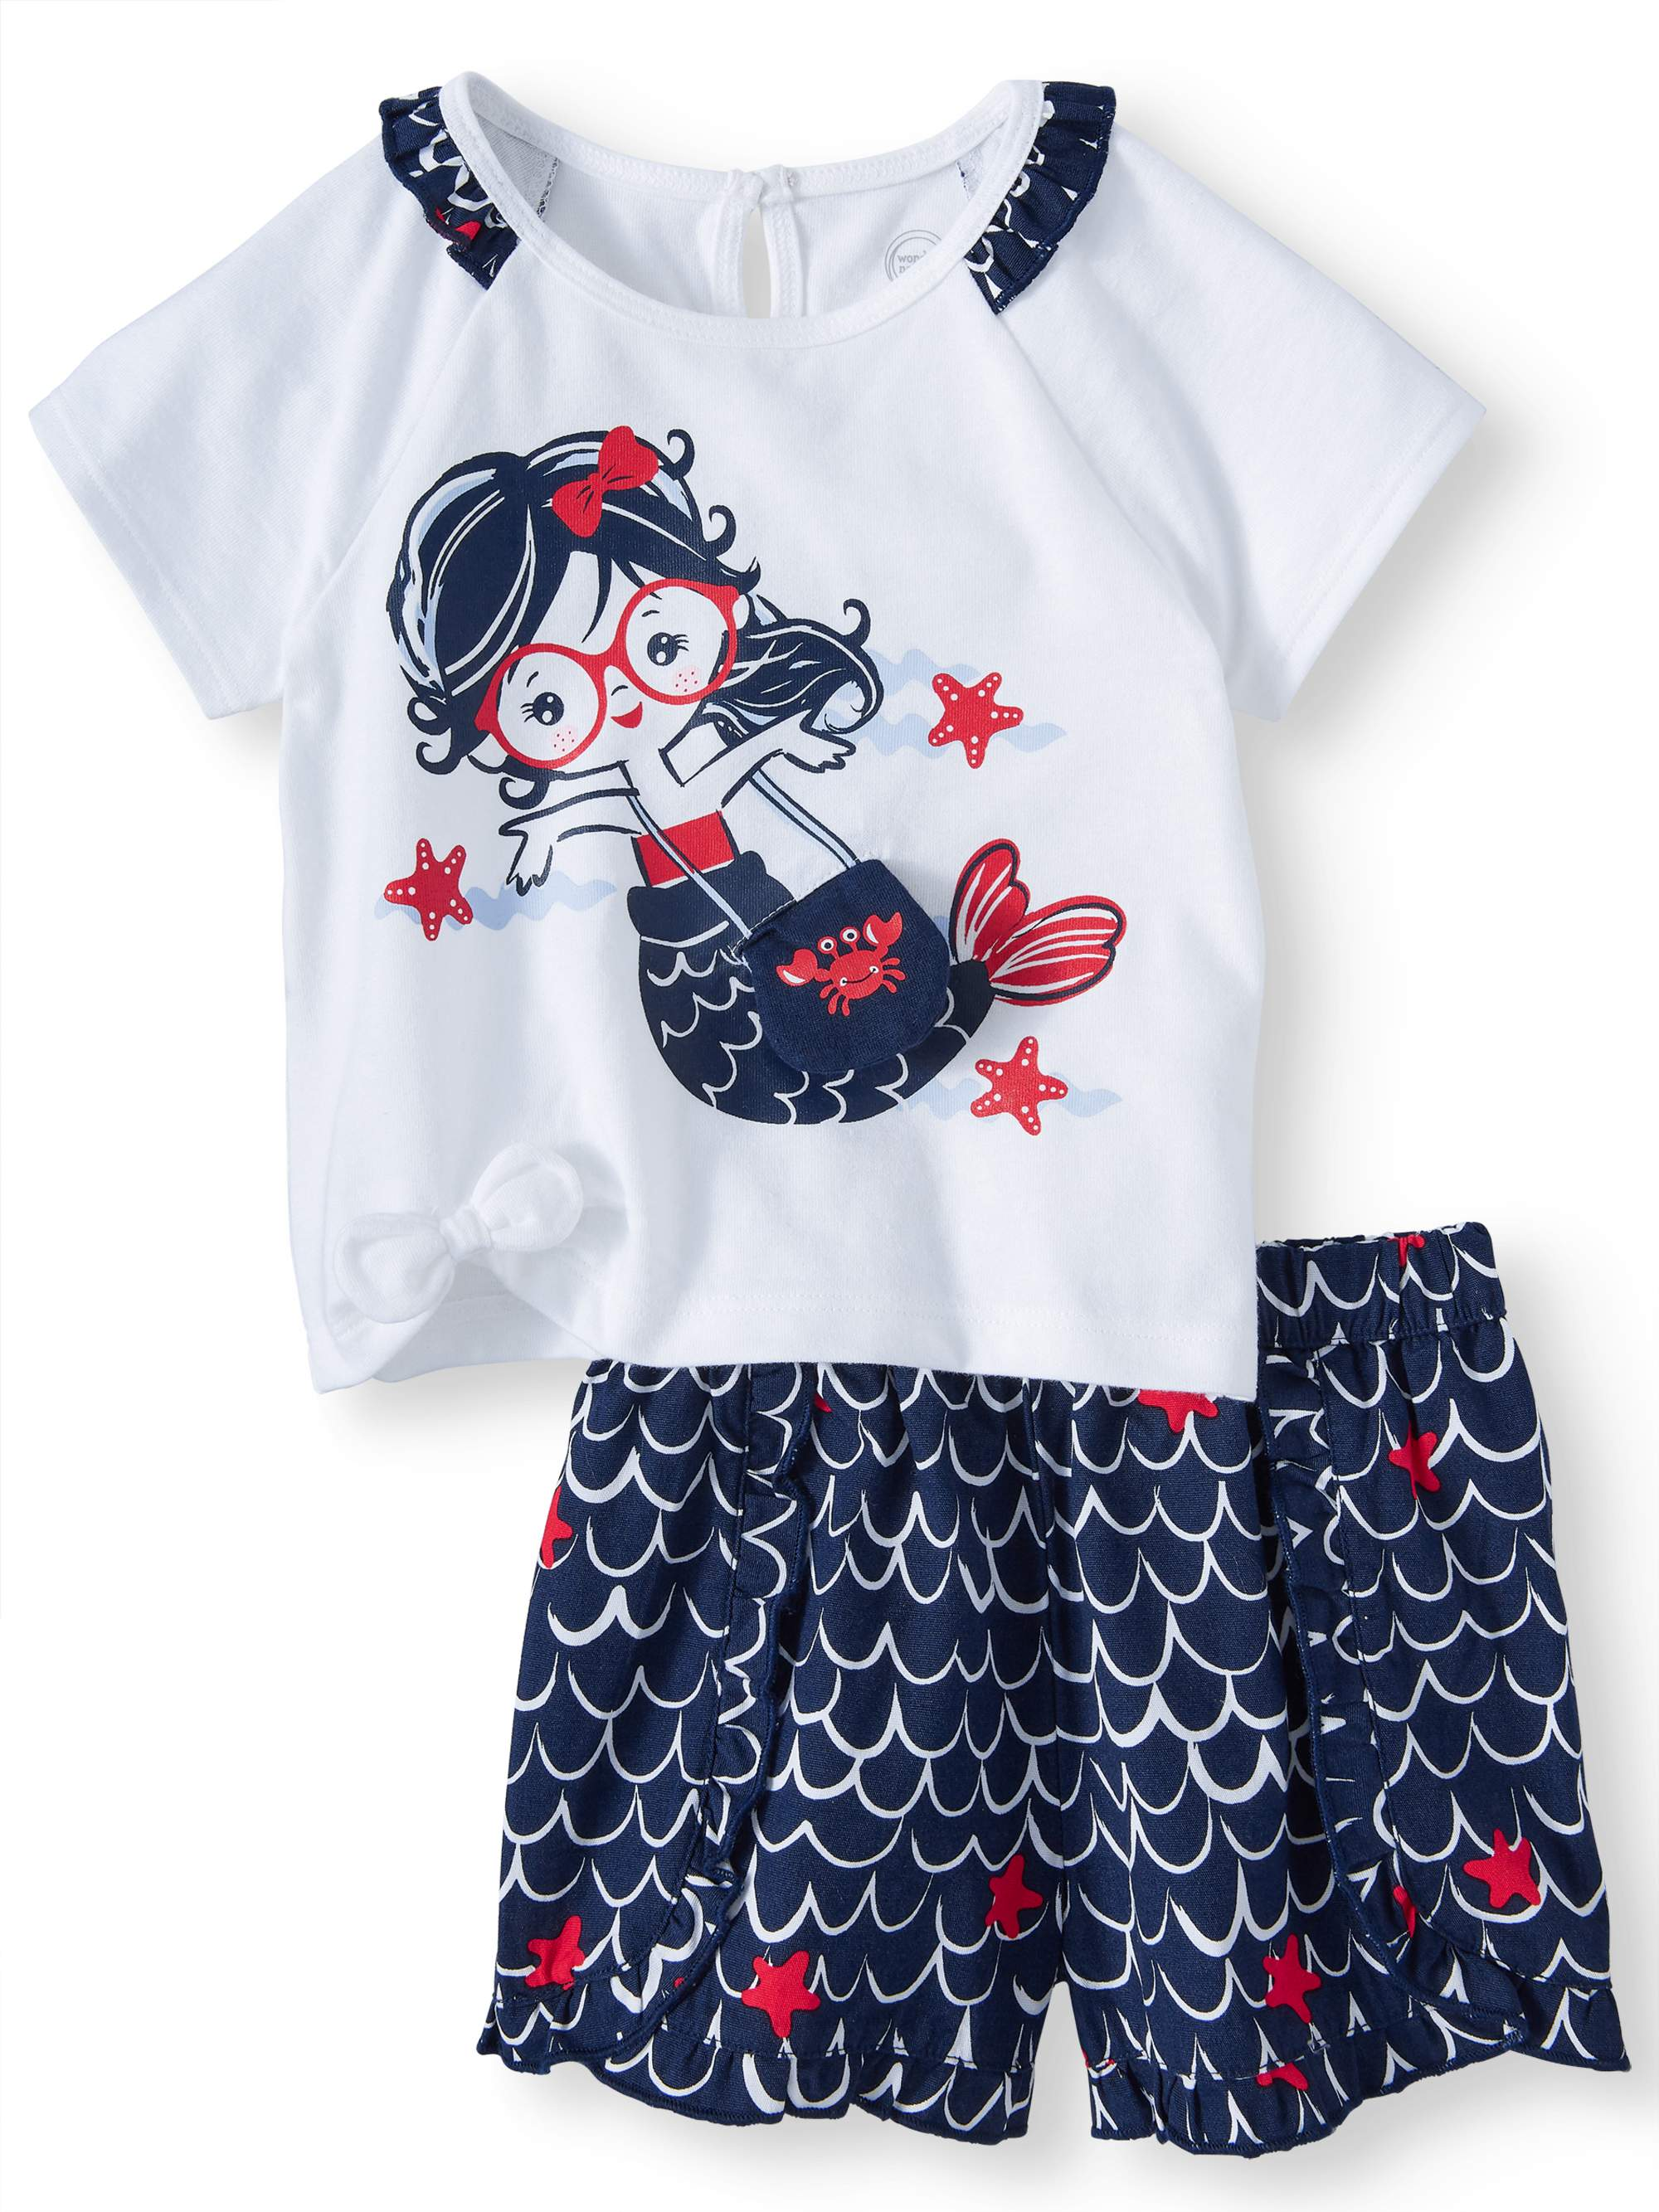 Baby Girls' 3D Graphic Mermaid T-Shirt and Ruffle Shorts, 2-Piece Outfit Set